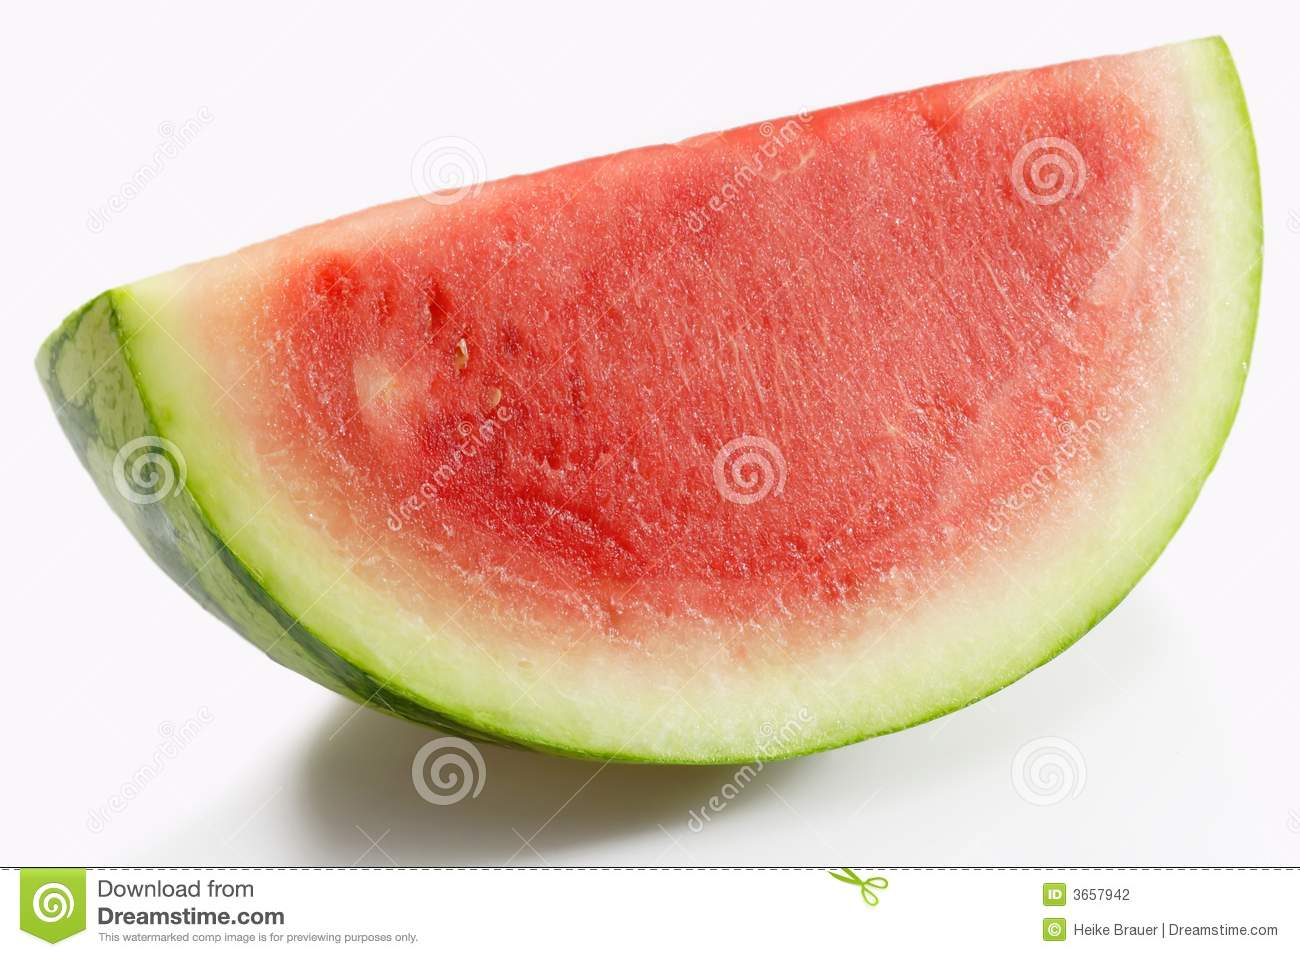 how to draw a slice of watermelon